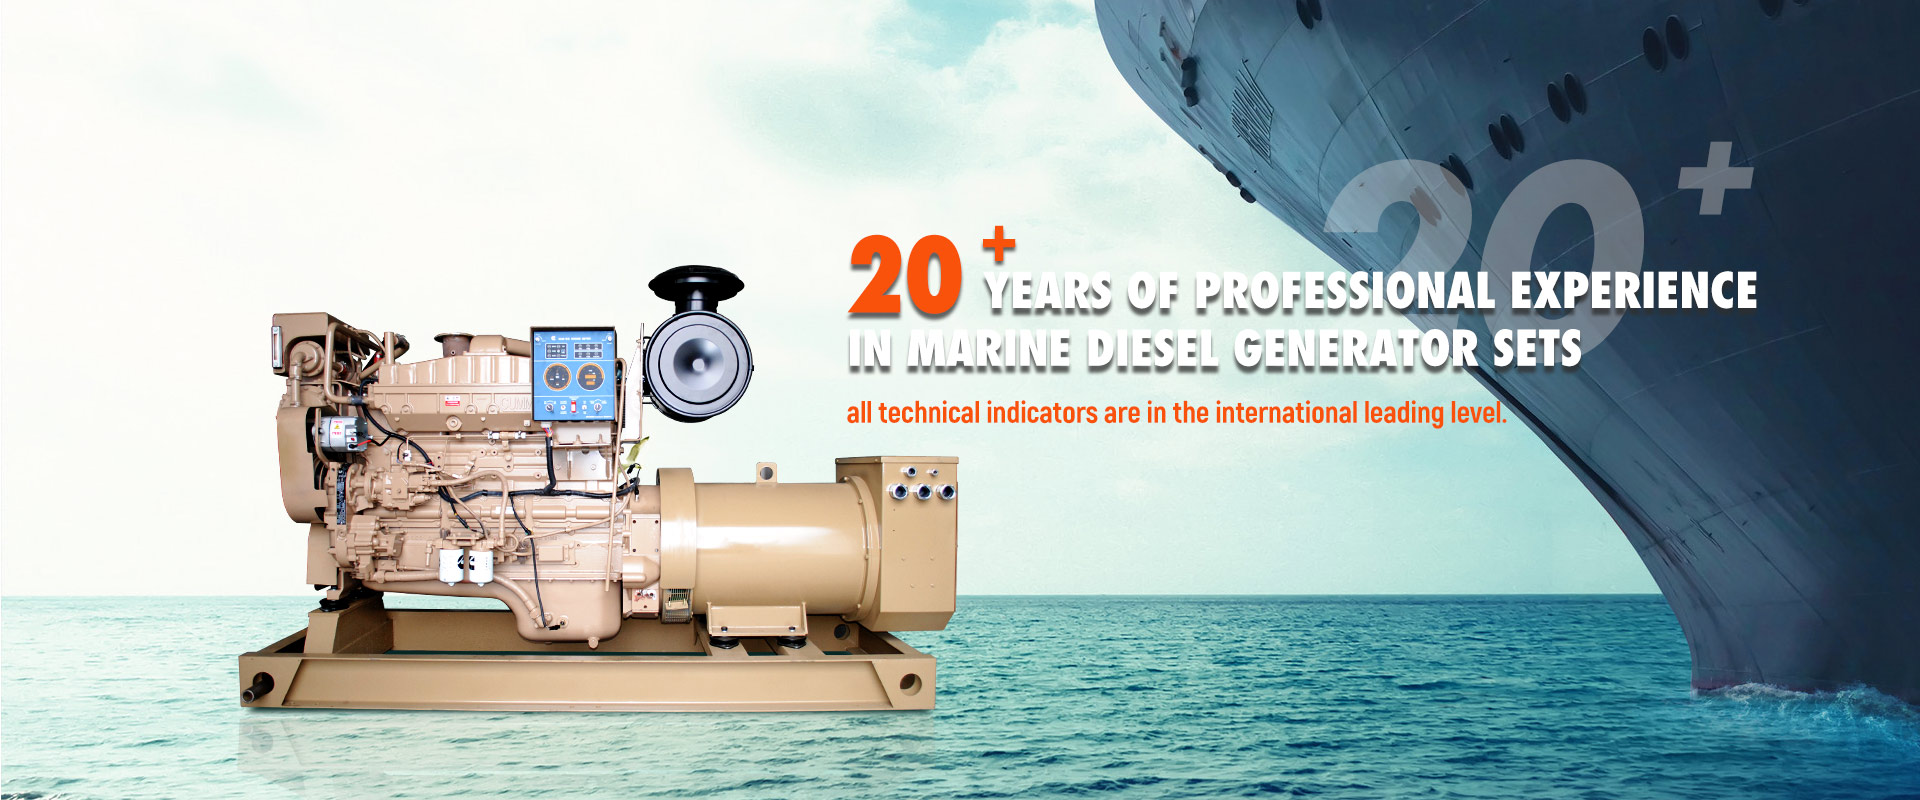 20+ years of professional experience in Marine diesel generator sets